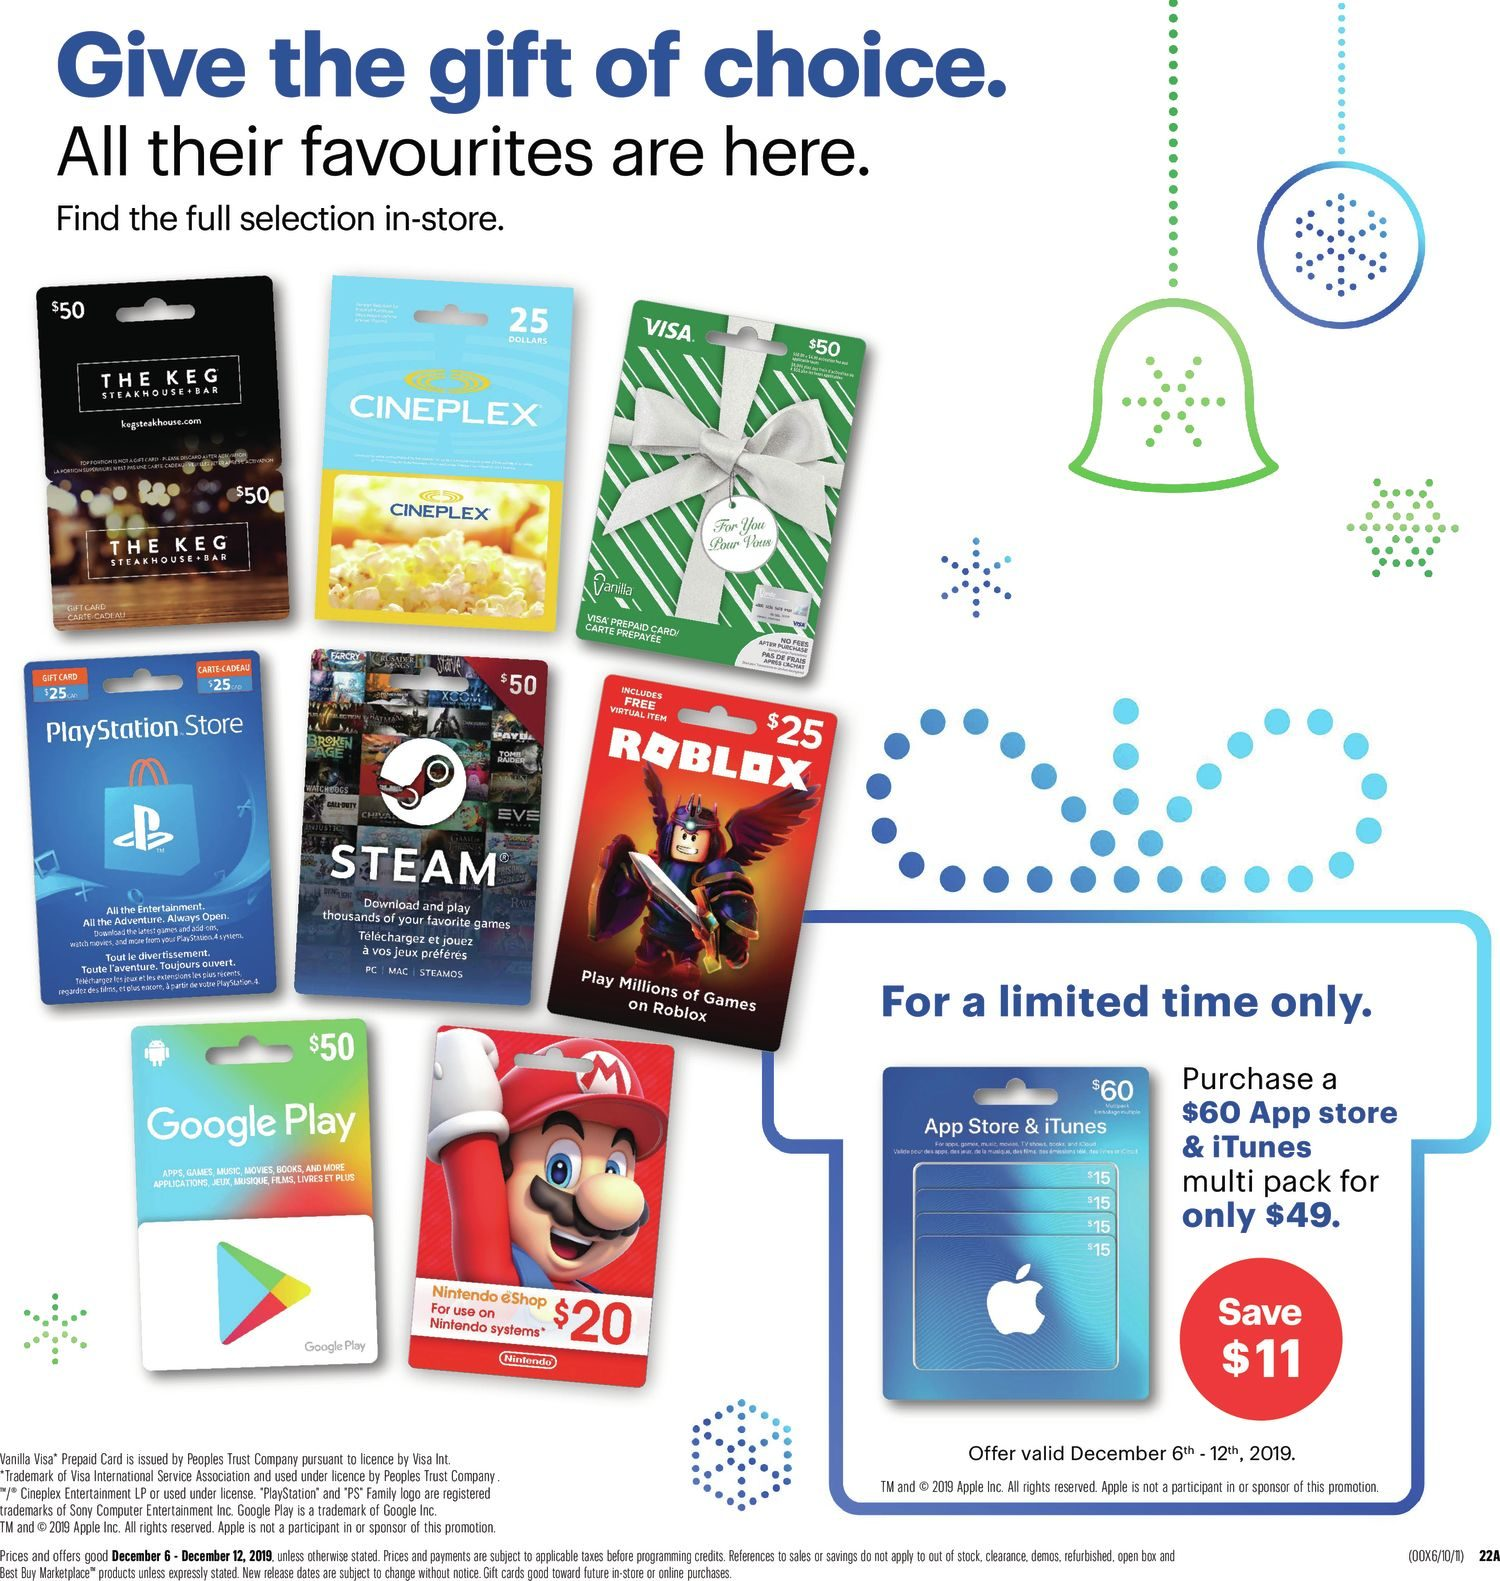 Empire Theatre V7 Roblox Best Buy Weekly Flyer Weekly Save On The Best Gifts Dec 6 12 Redflagdeals Com